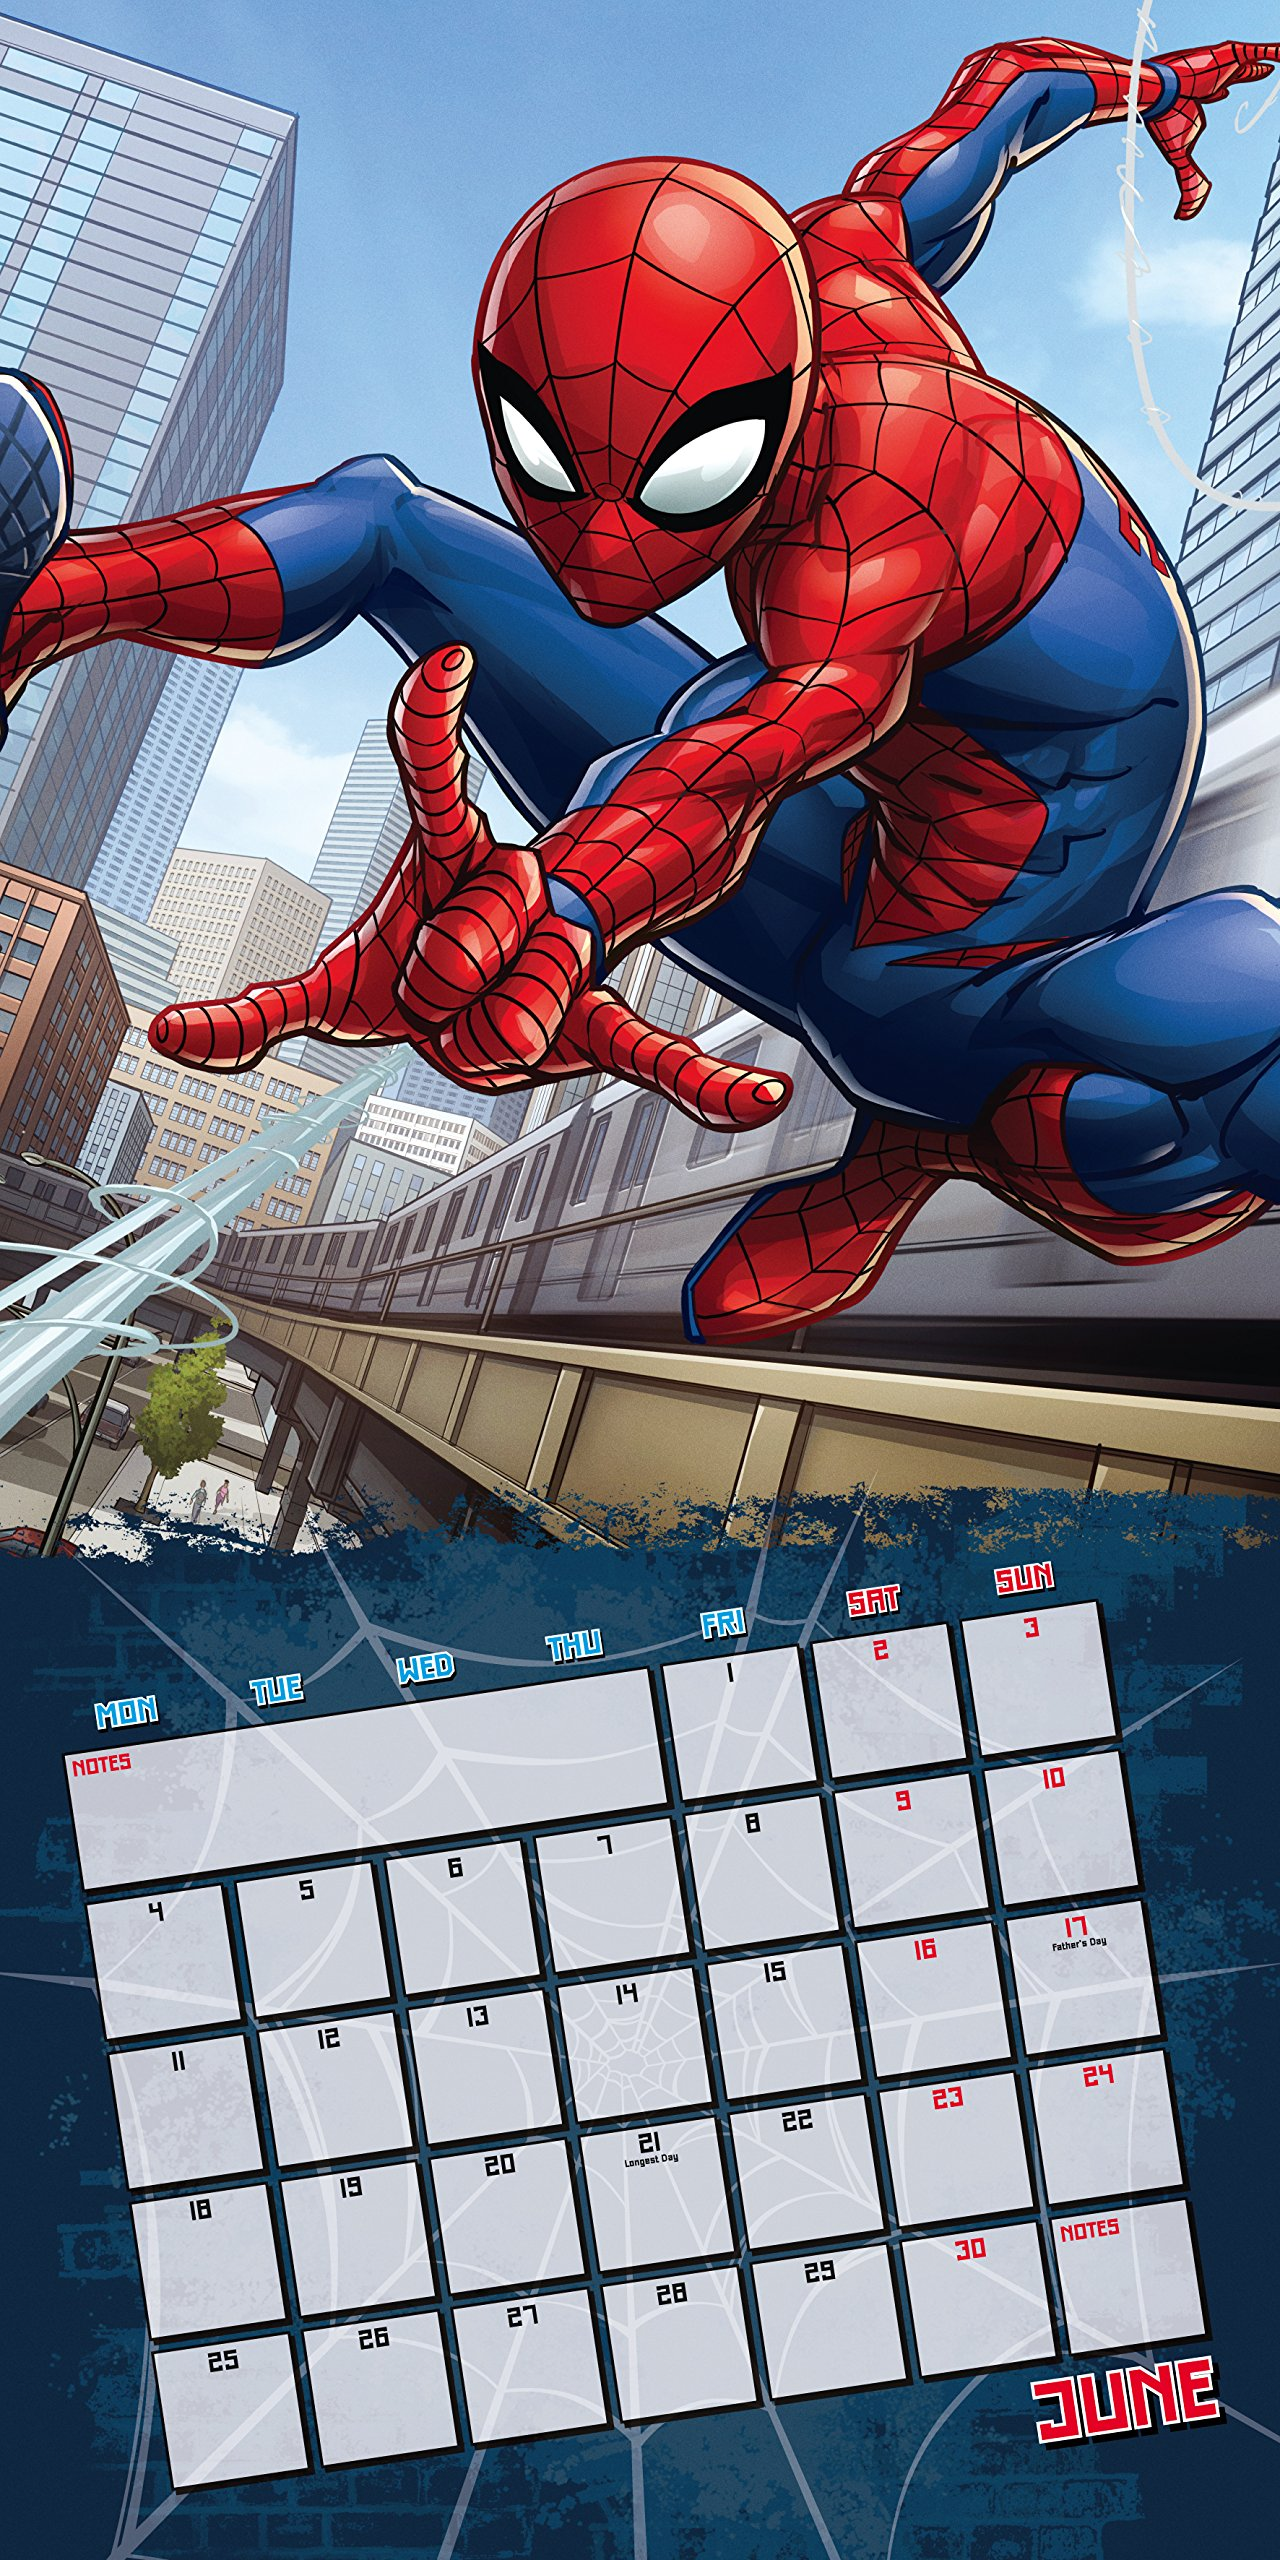 Spiderman Official 2018 Calendar - Square Wall Format